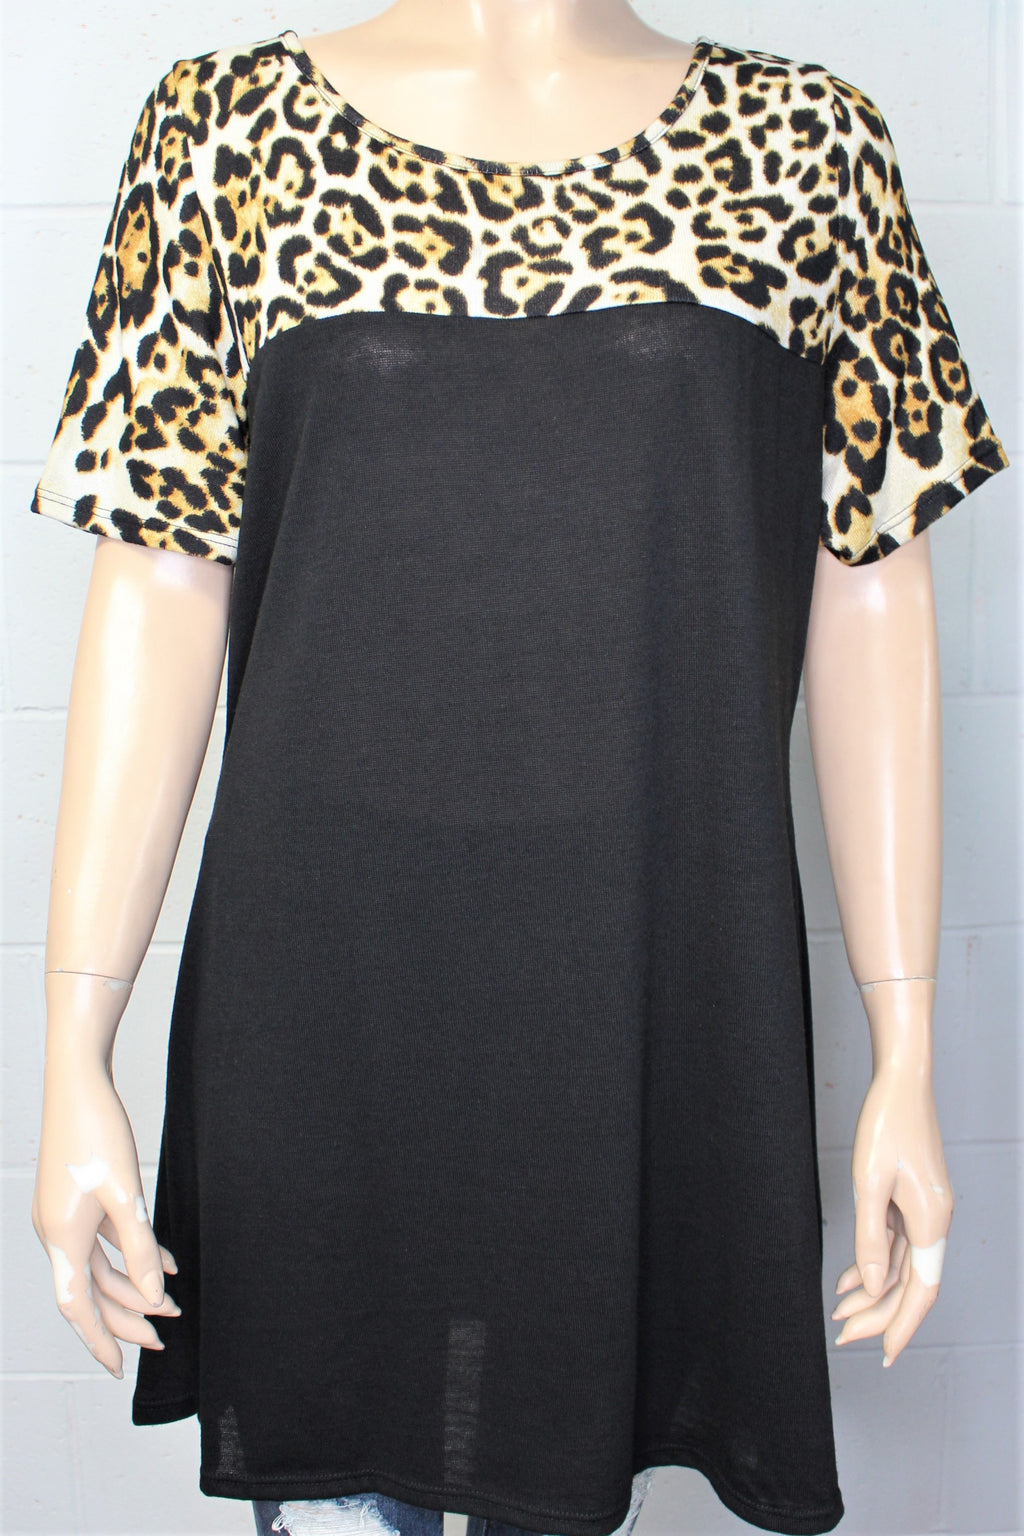 Women's Short Sleeve Tunic Dress with Animal Print